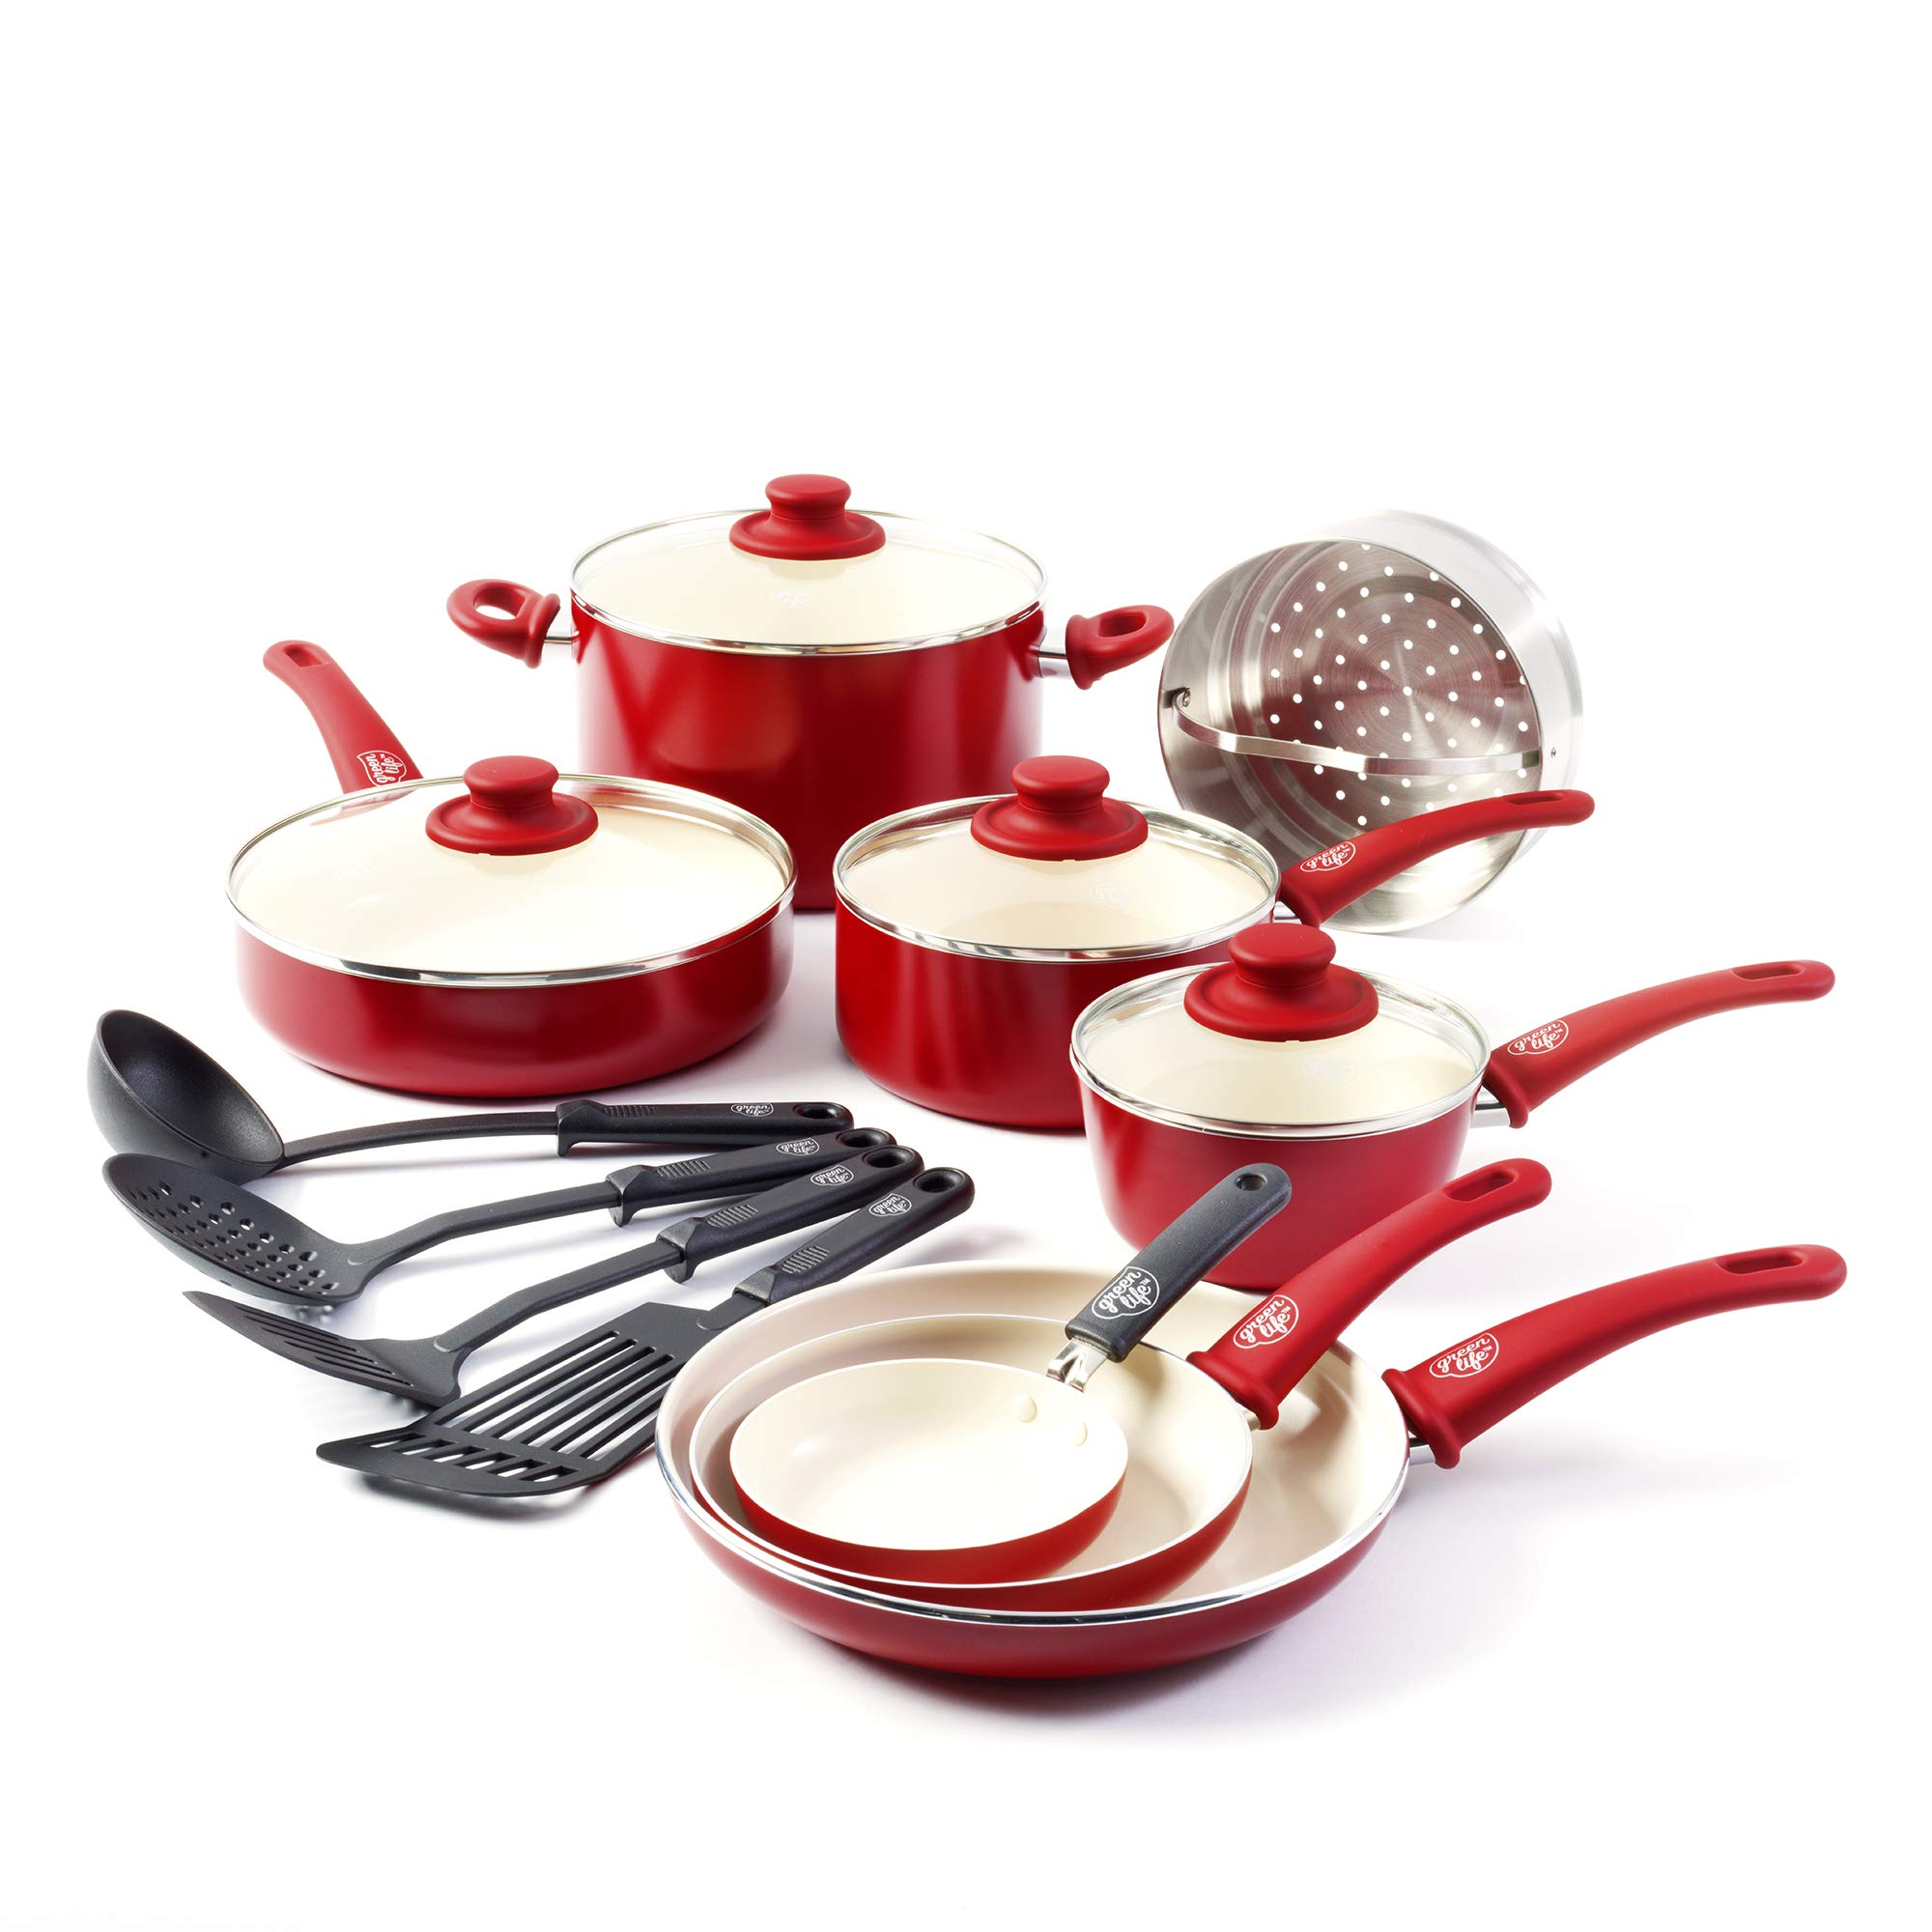 GreenLife Ceramic Non Stick Cookware Burgundy